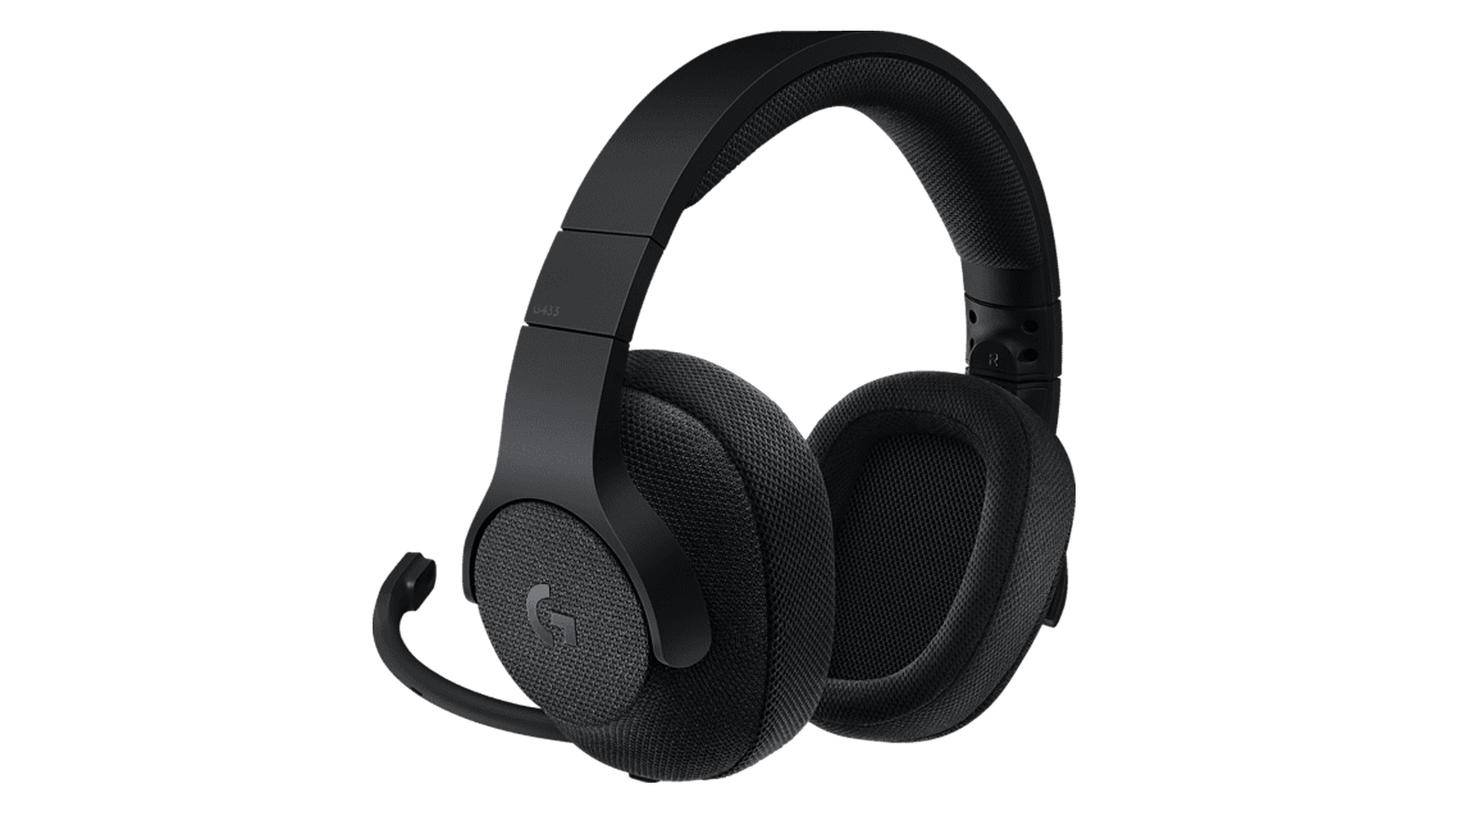 Logitech G433 Surround Gaming Headset